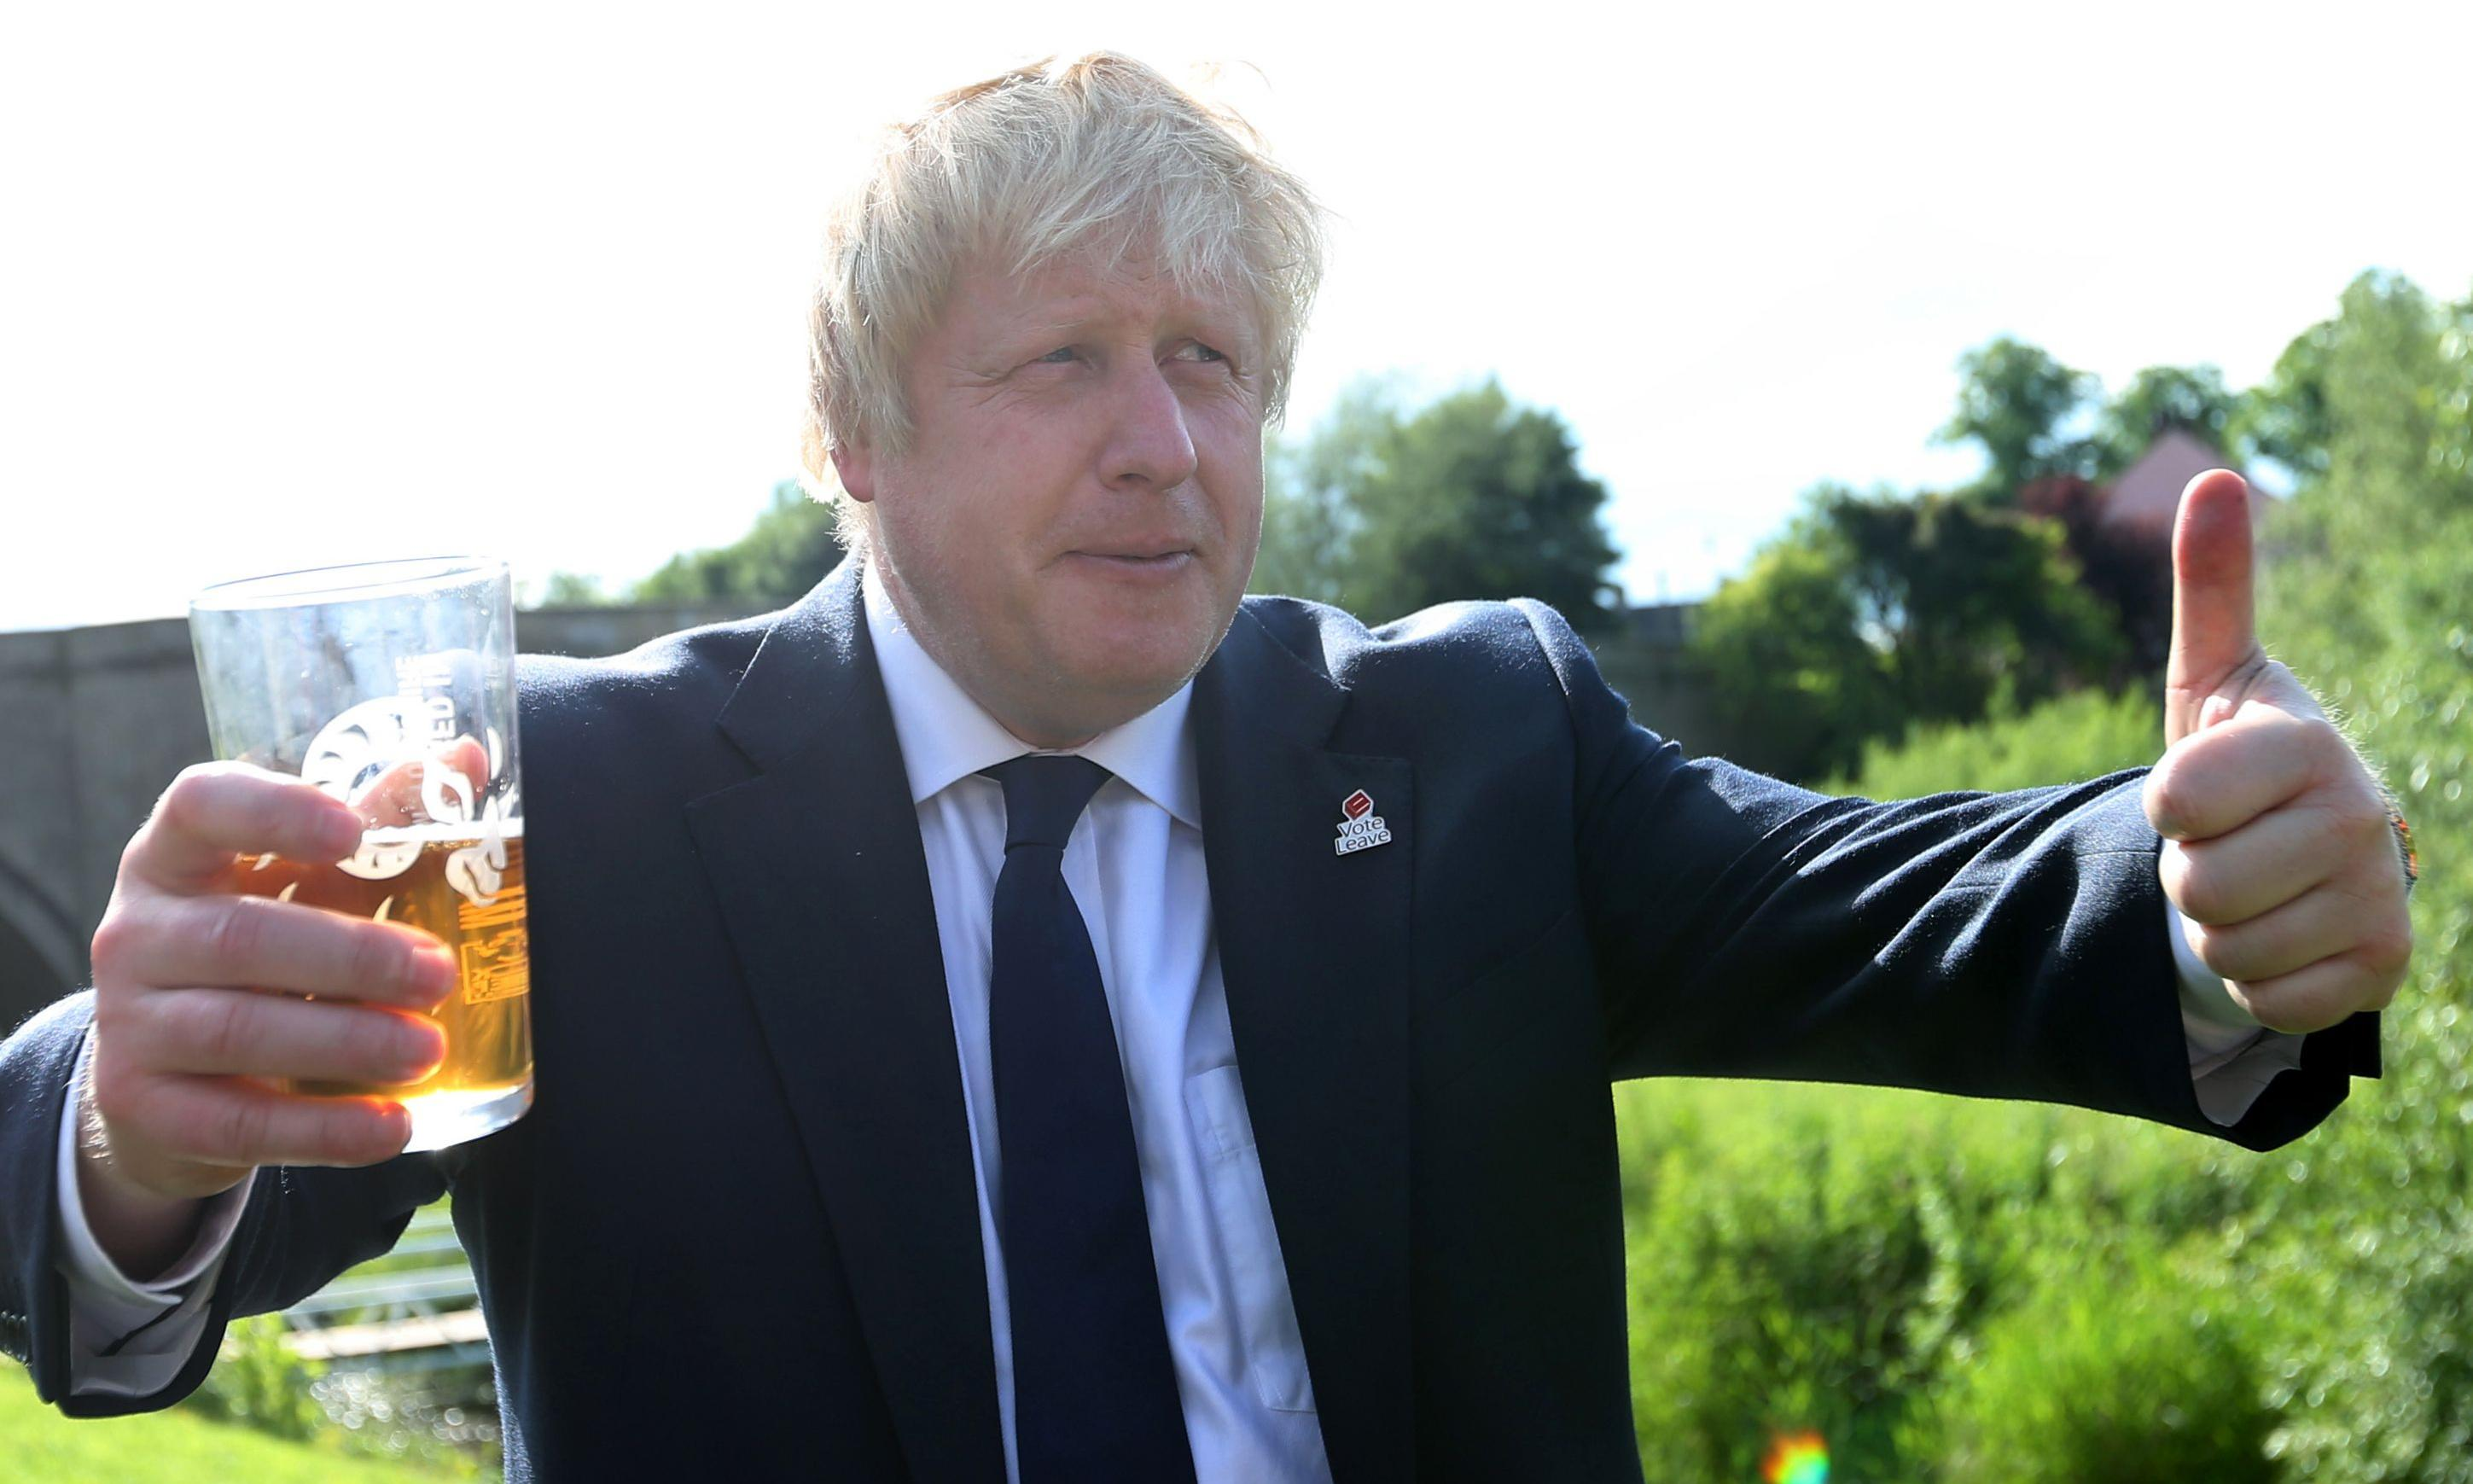 I worked with Boris Johnson as mayor. He's not fit to lead